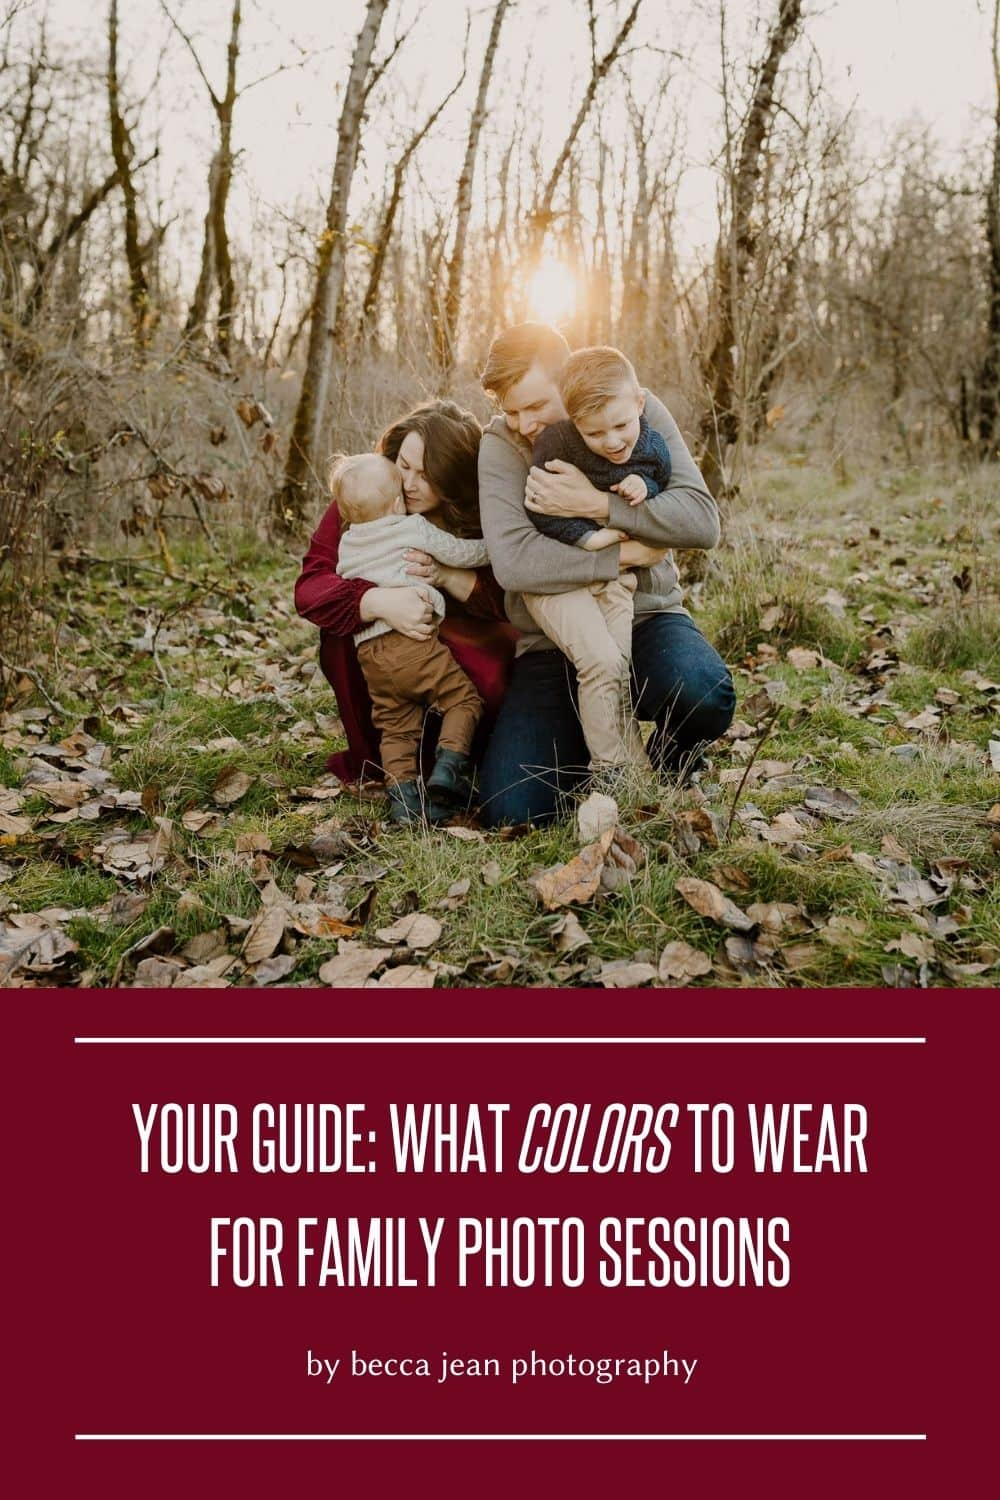 What colors look best for family photos